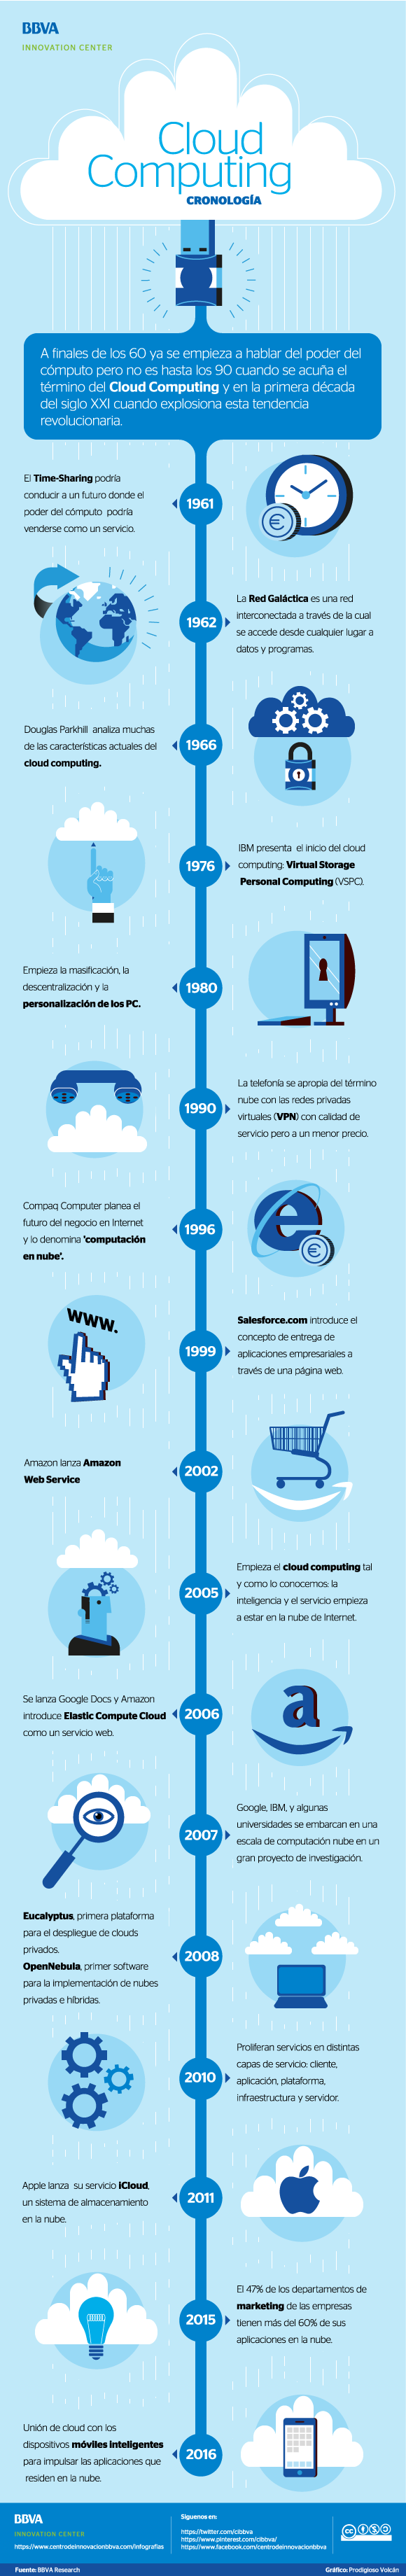 Historia del Cloud Computing